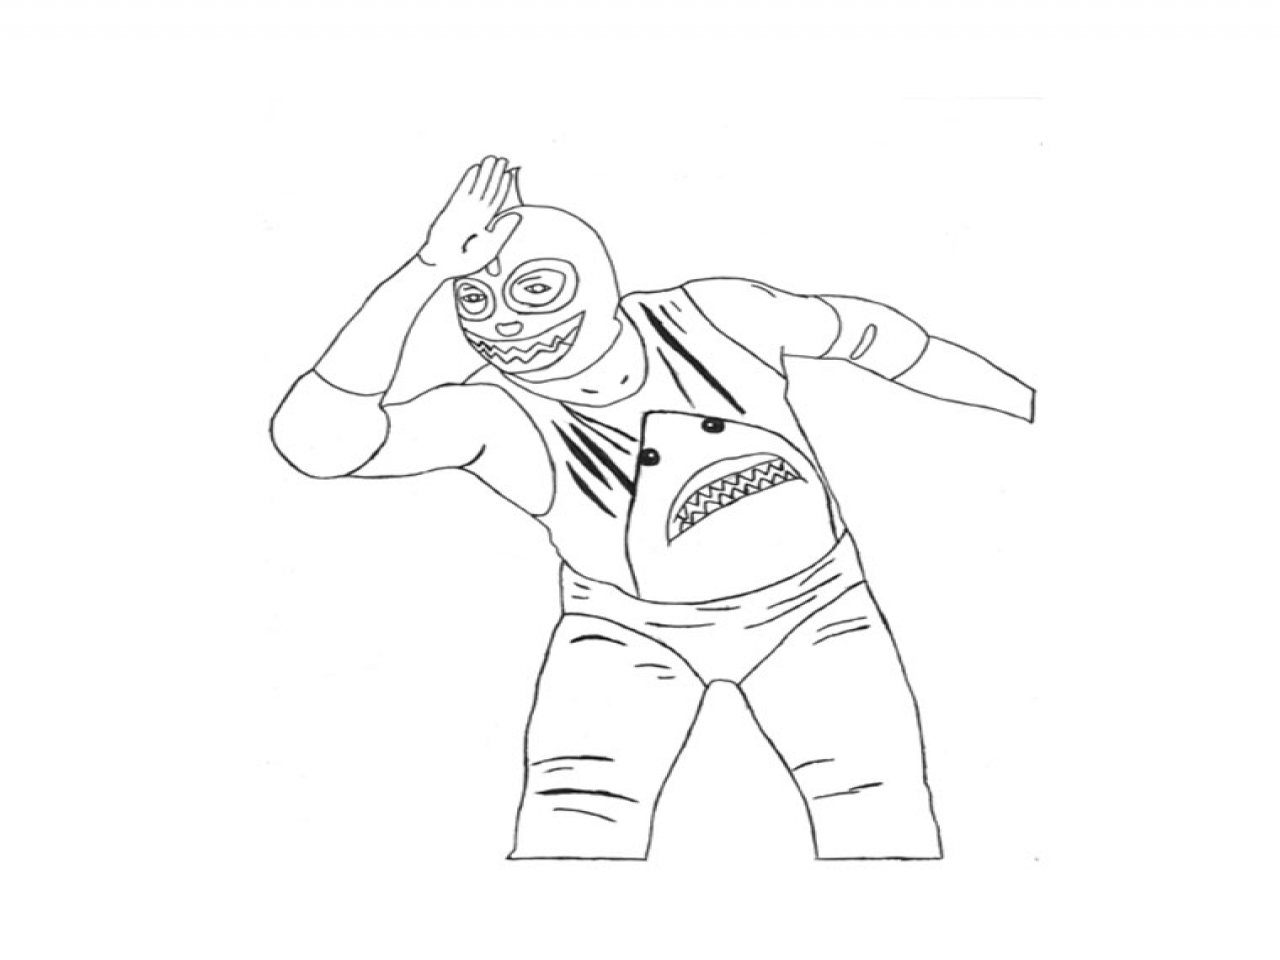 rey mysterio coloring mask rey mysterio mask coloring pages it mask rey coloring mysterio